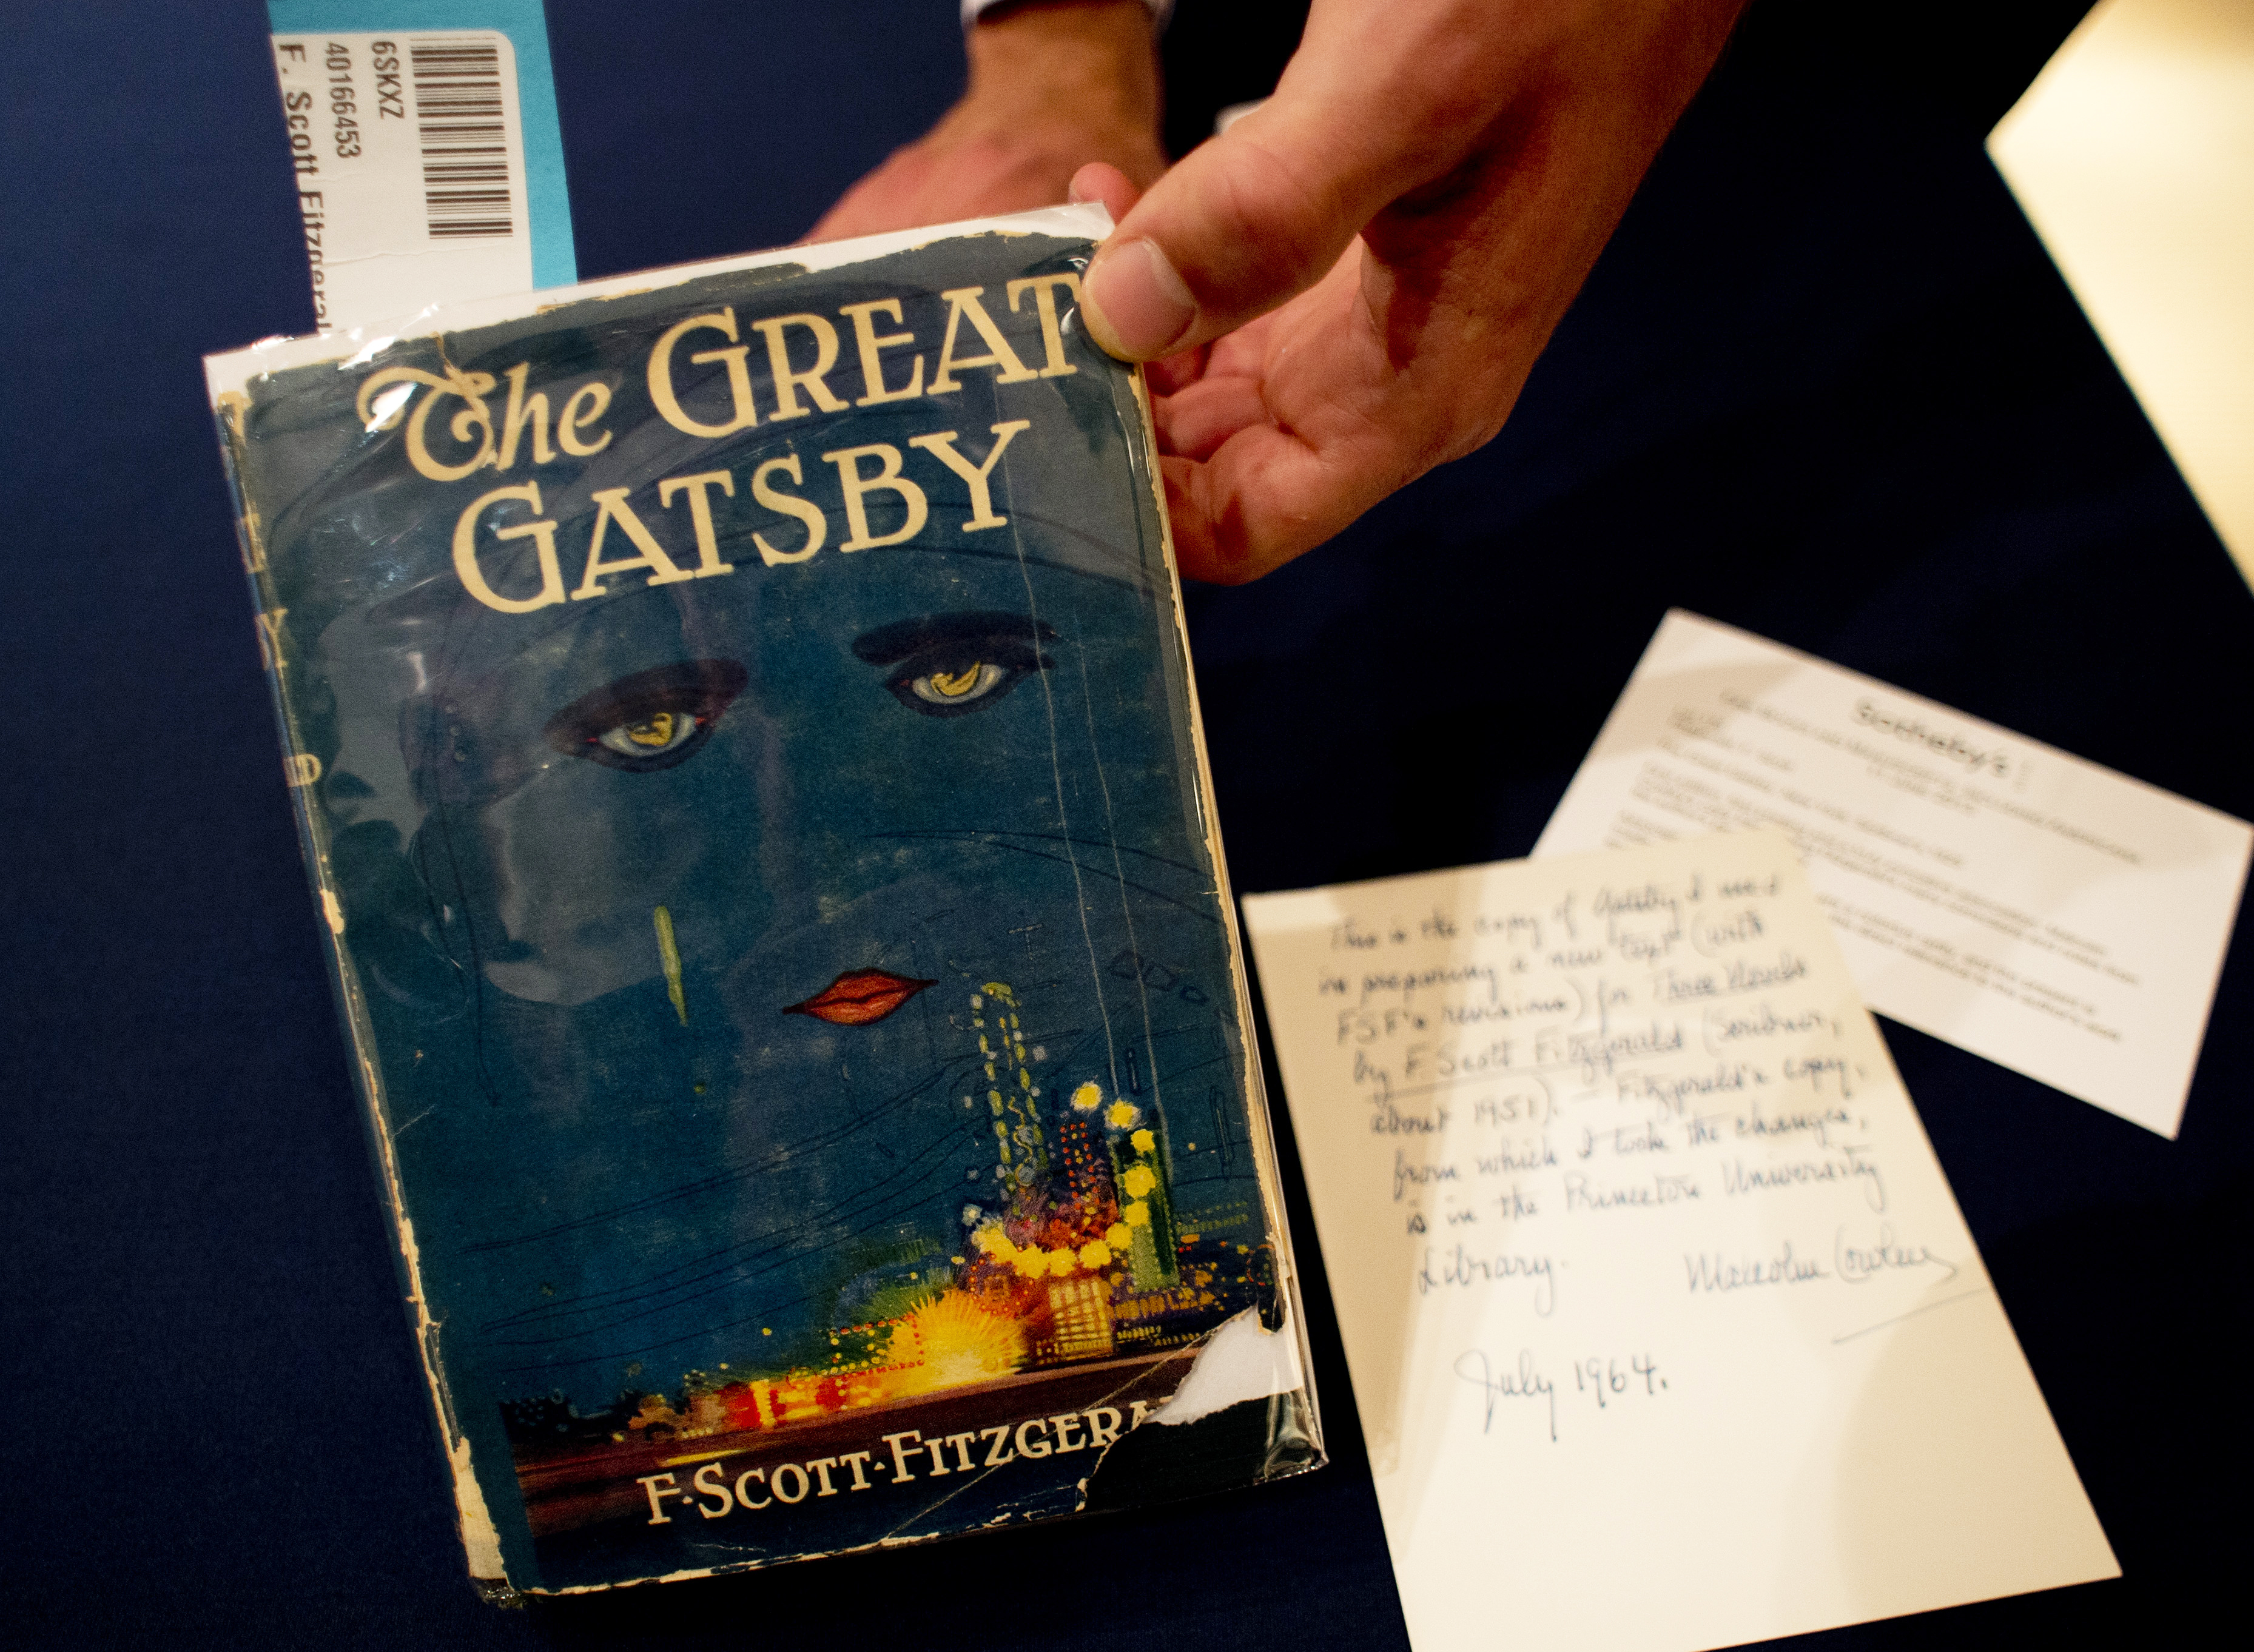 the great gatsby reading log Read story great gatsby by timburtonchild (payton gervais) with 1,918 reads lovestory, greatgatsby, hurt  log in sign up great gatsby by timburtonchild great gatsby table of contents great gatsby chapter 2 mysteries new reading list vote you are reading great gatsby fanfiction nicks sister, nevaeh is going to nyu when she moves in.